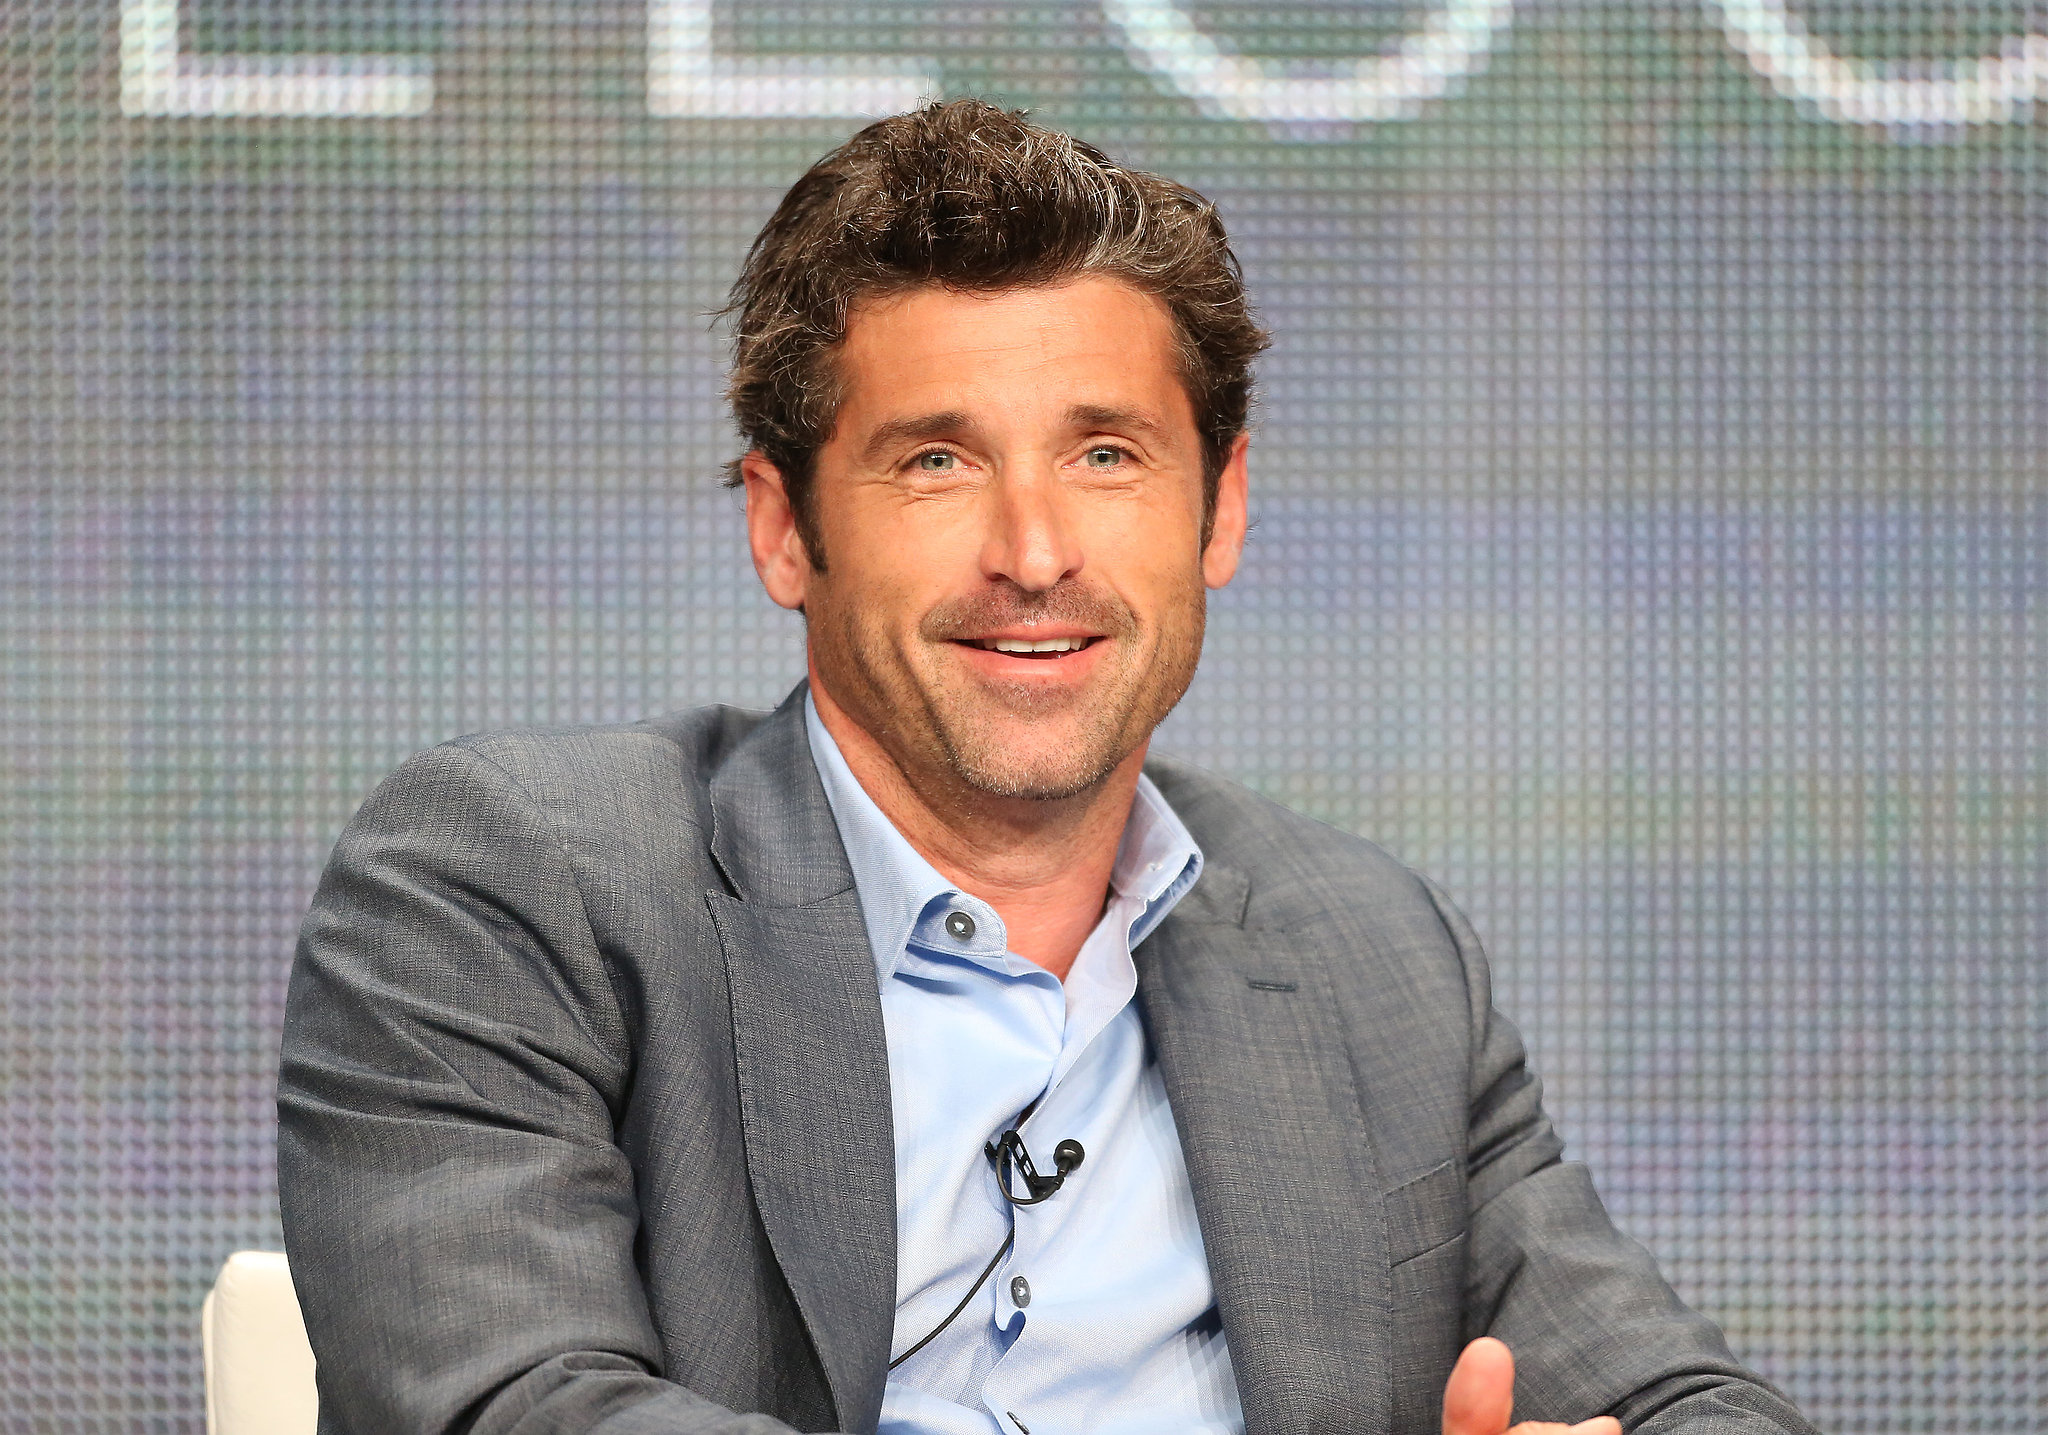 Patrick Dempsey talked about racing at HBO's Racing Le Mans panel.